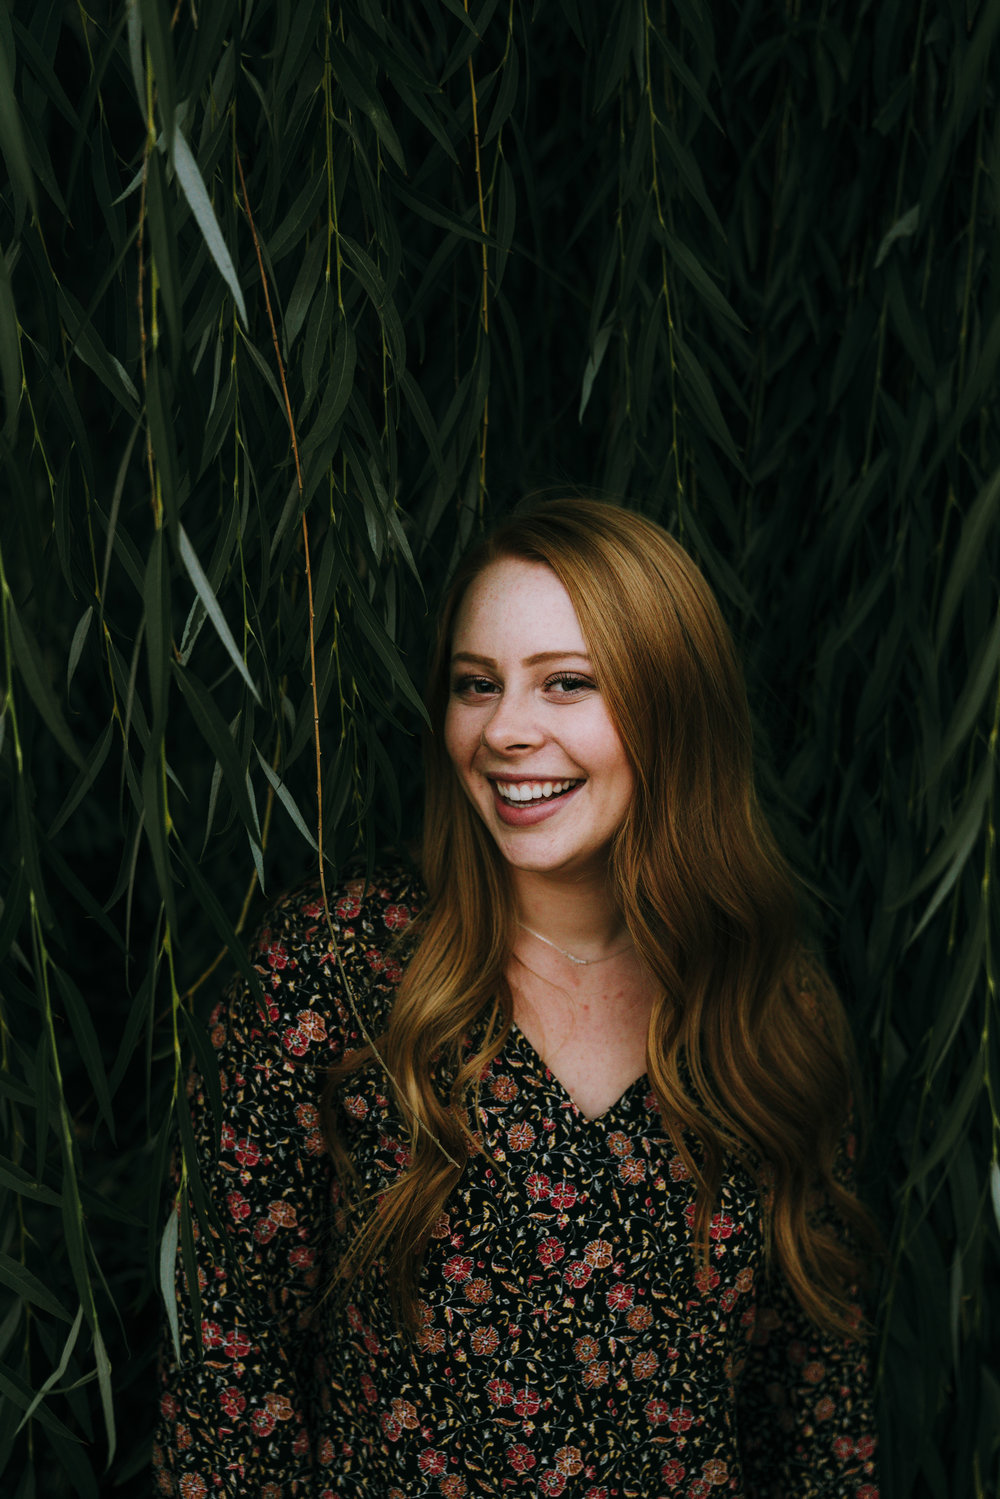 abbyseniorsession-74.jpg